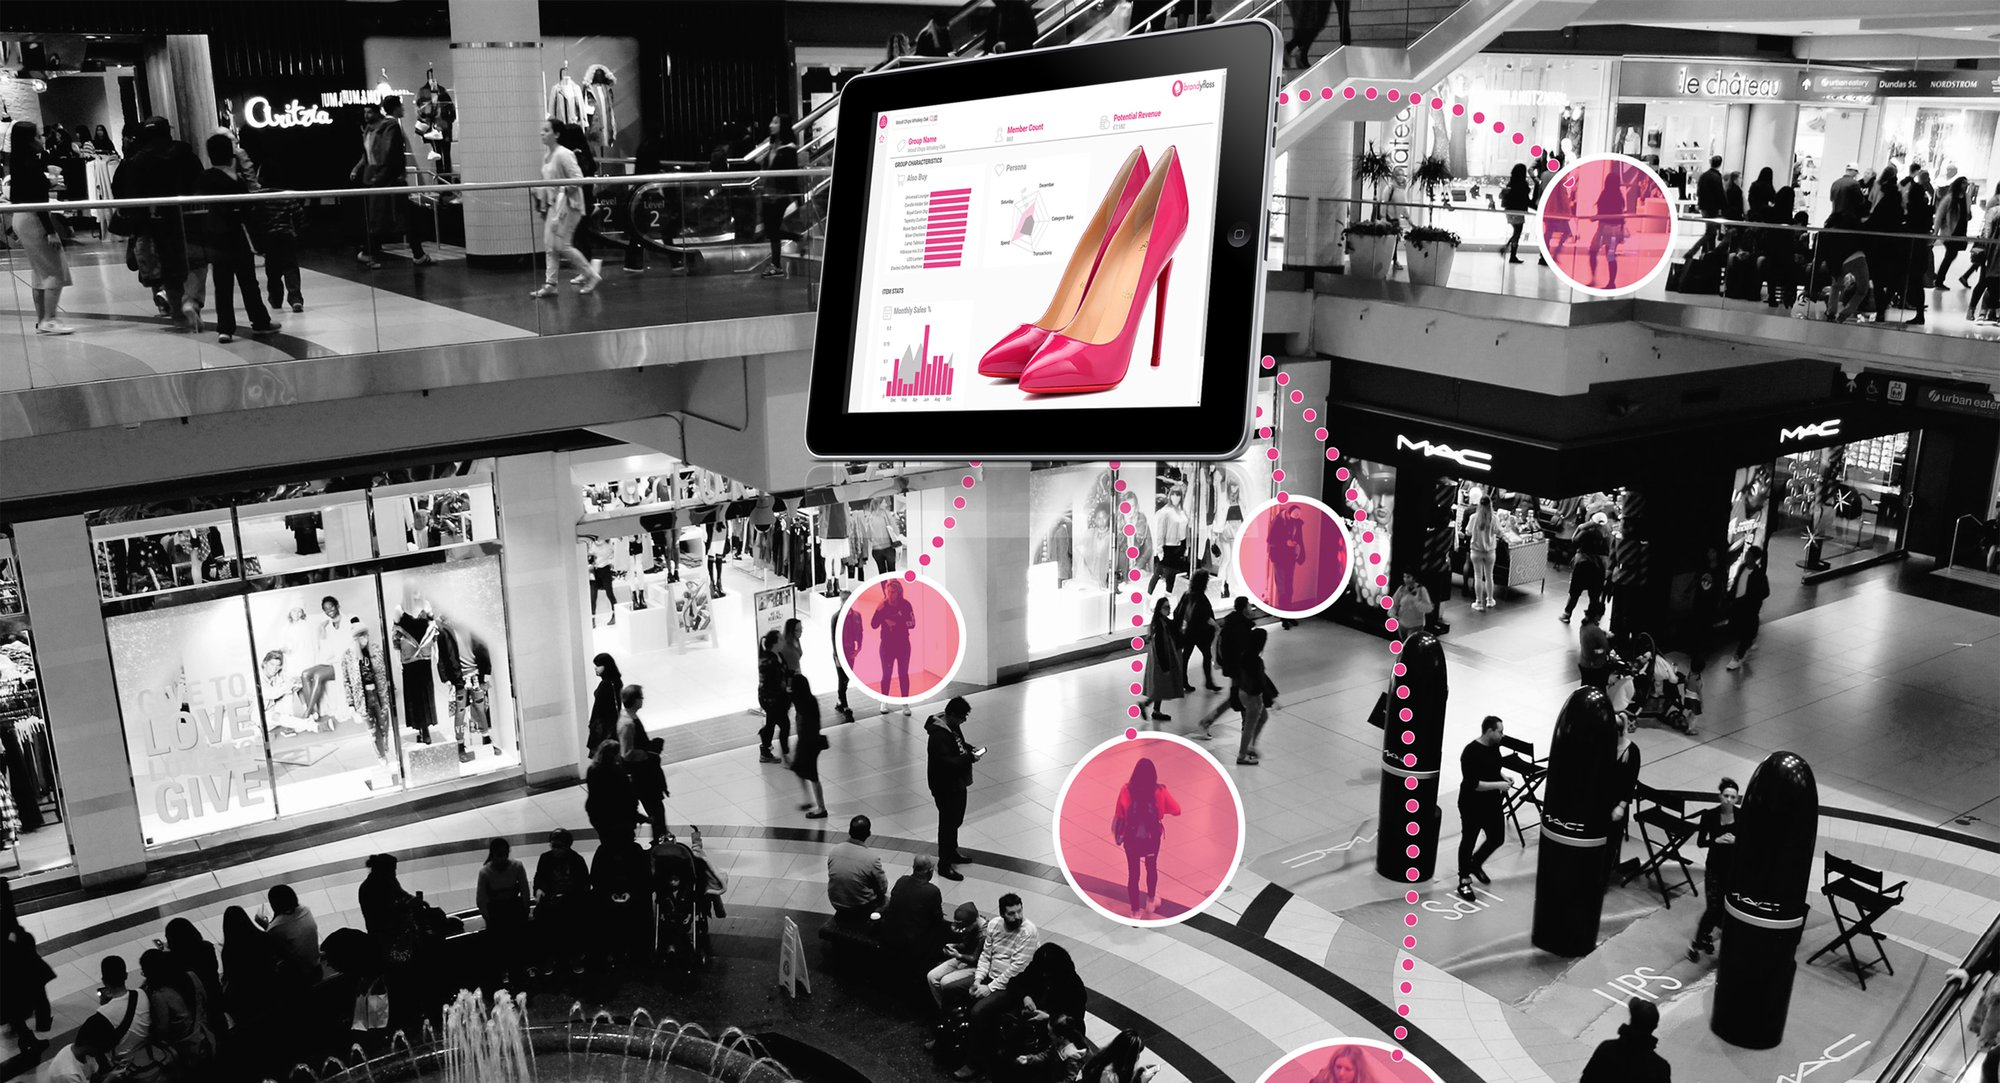 brandyfloss Case Study: Increasing Retail Sales Conversion with A.I. Software